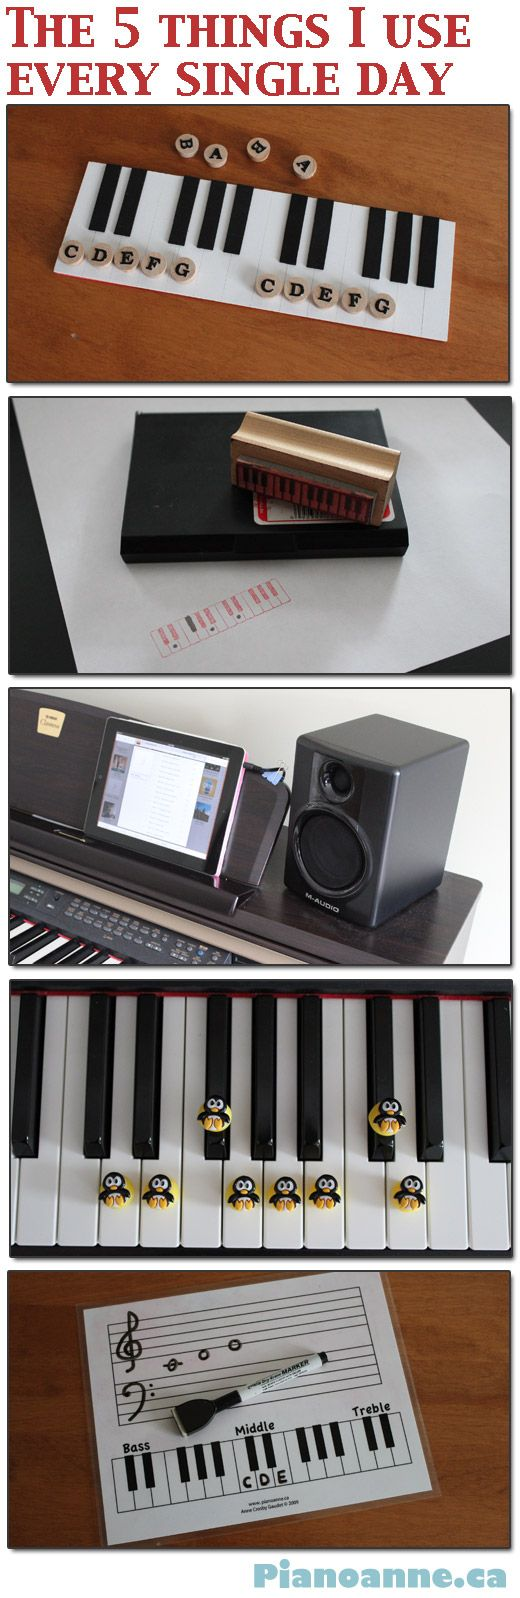 5 piano teaching aids that look great to use.  I love the keyboard stamp - and the penguins look so cute.!